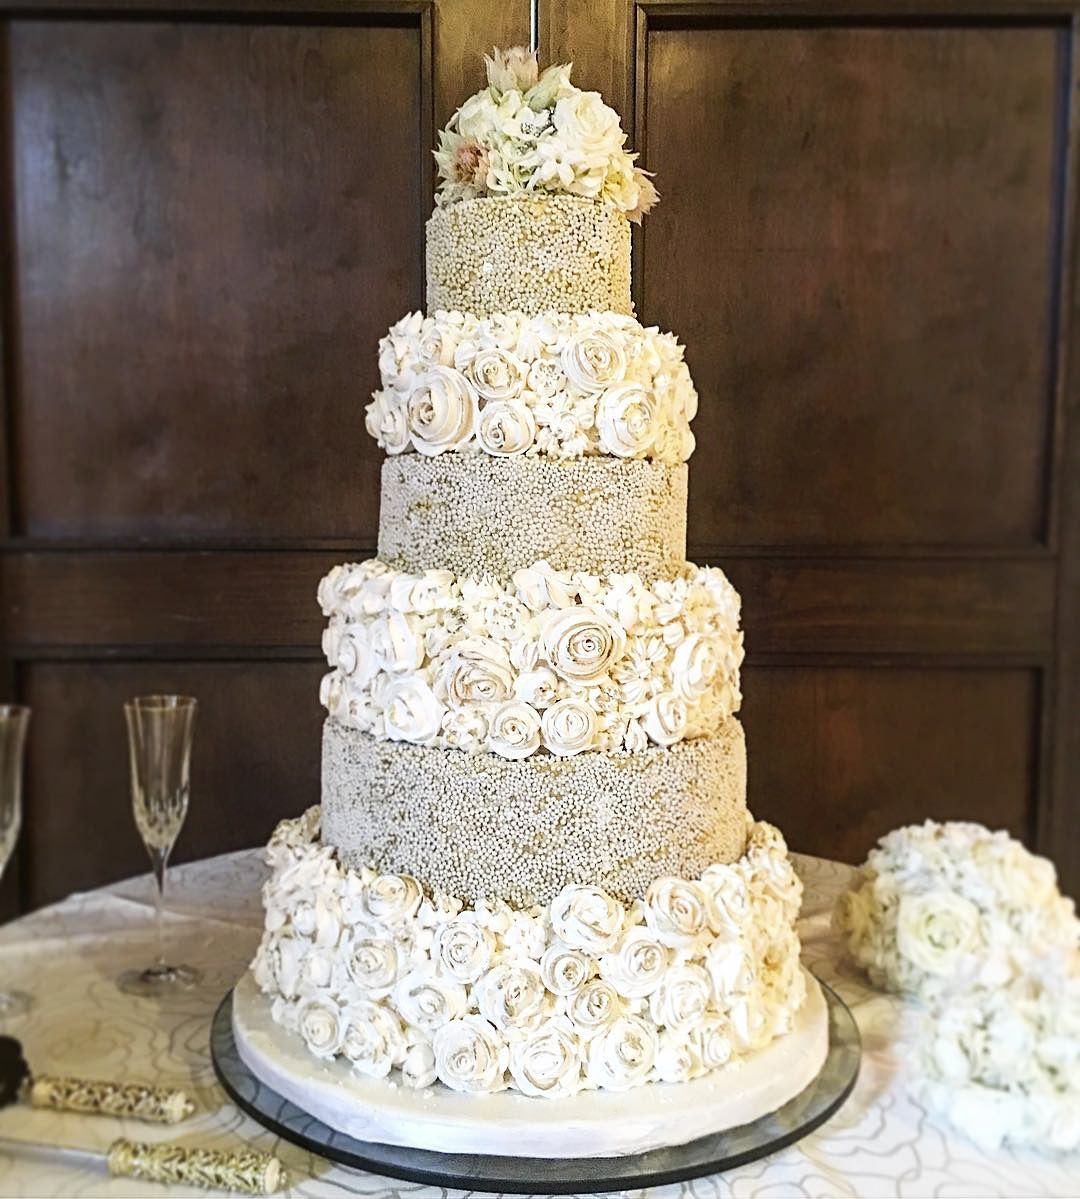 Don't you just love all of the different layers and textures on this delicious wedding cake? Thanks @rustikacafe for sharing!